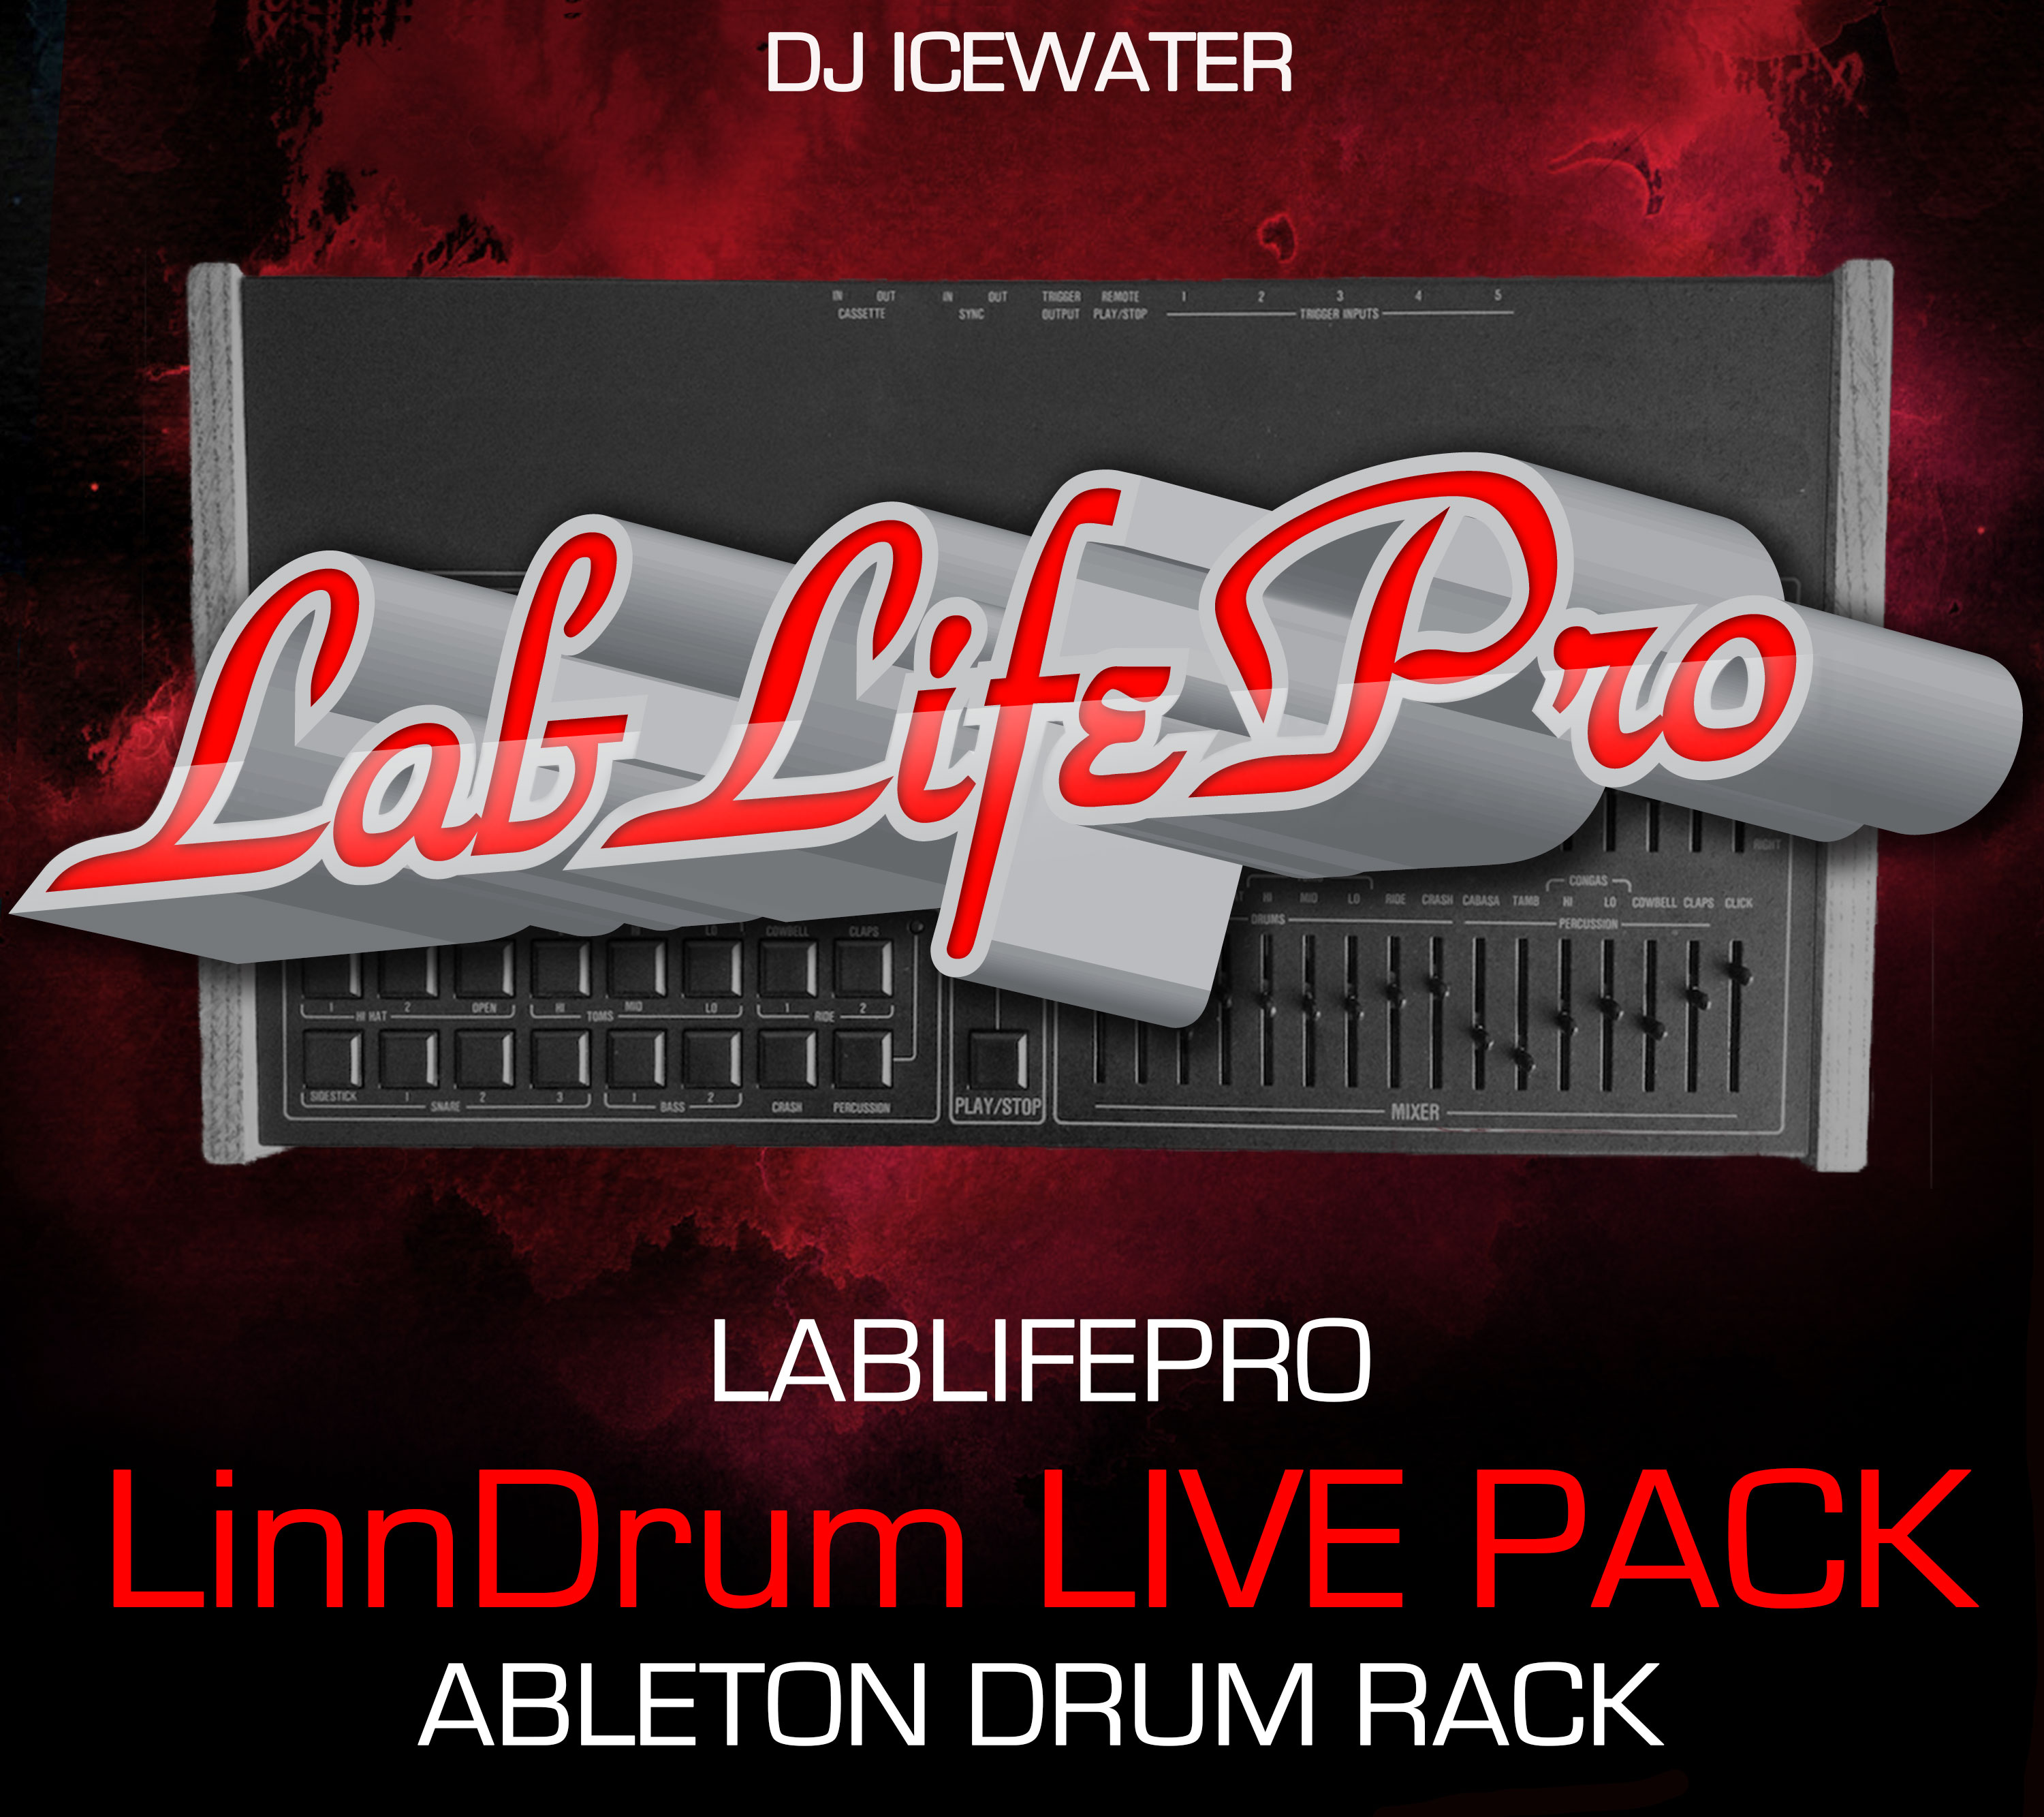 LinnDrum-Live-DRUM-PACK